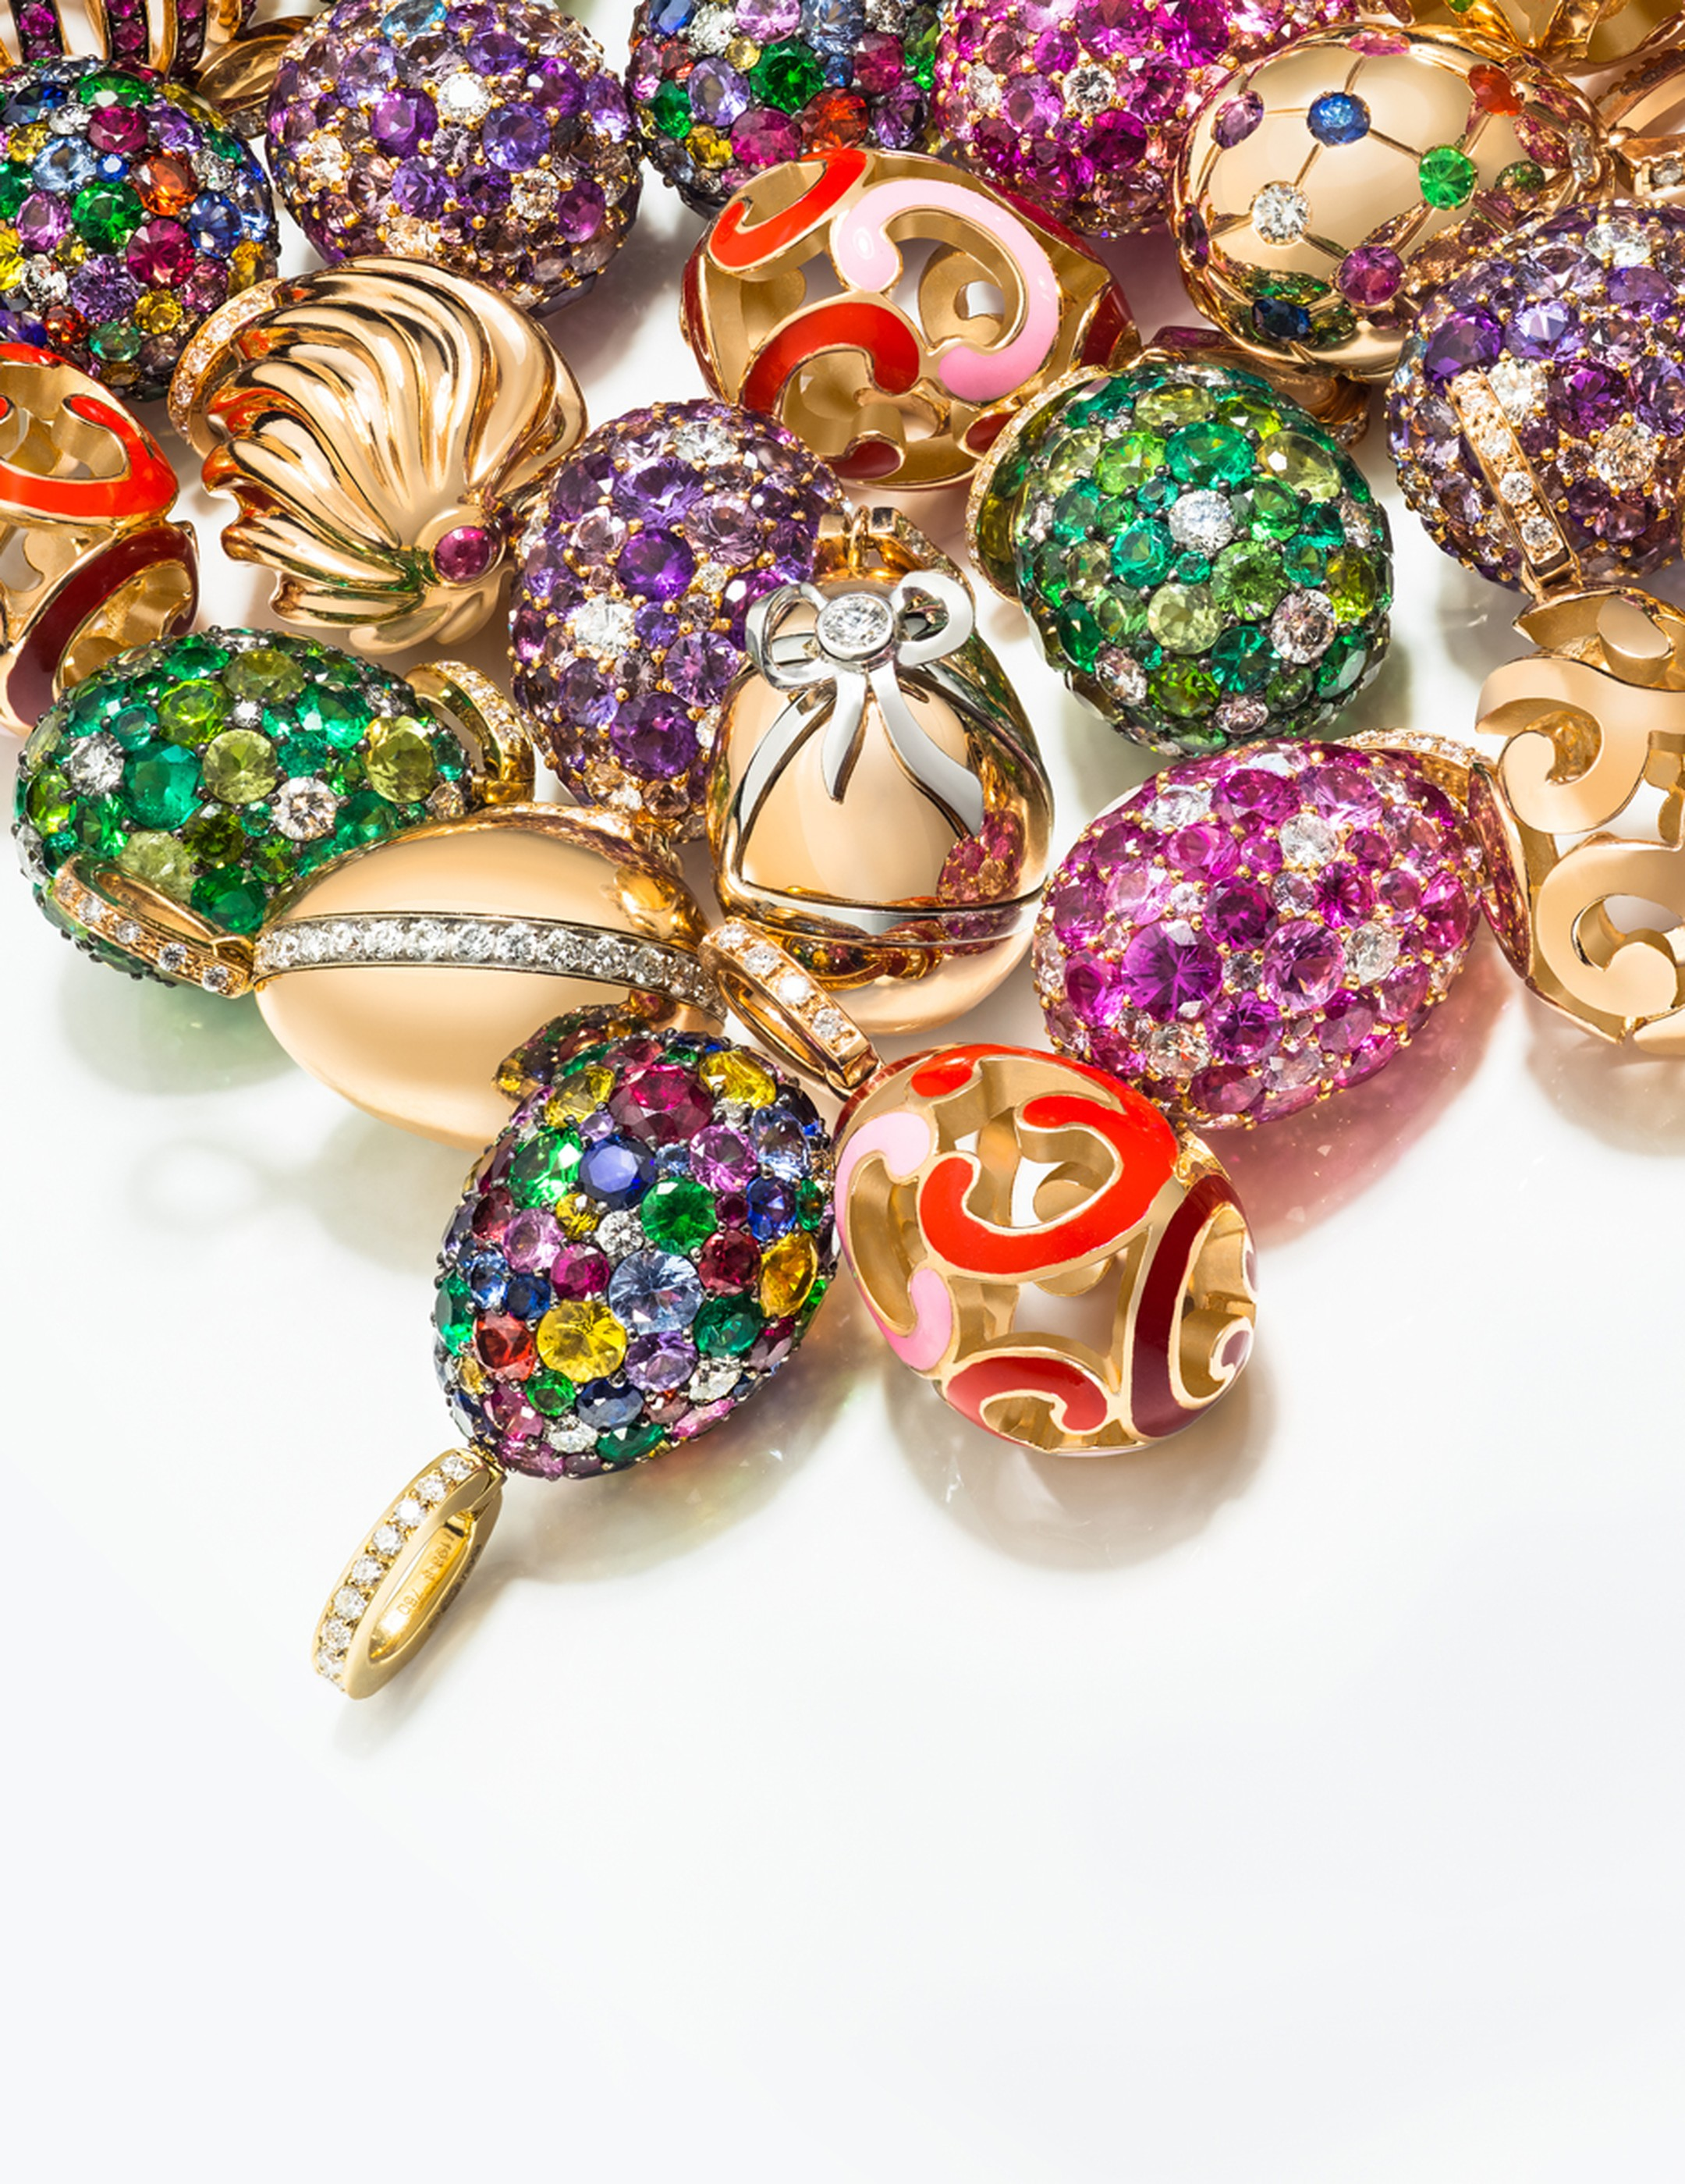 Fabergé's playful new Egg Charms, which can be fastened to a bracelet or worn on a chain around the neck, are punctuated with candy-bright gemstones, deeply ridged golden swirls or lustrous enamel.